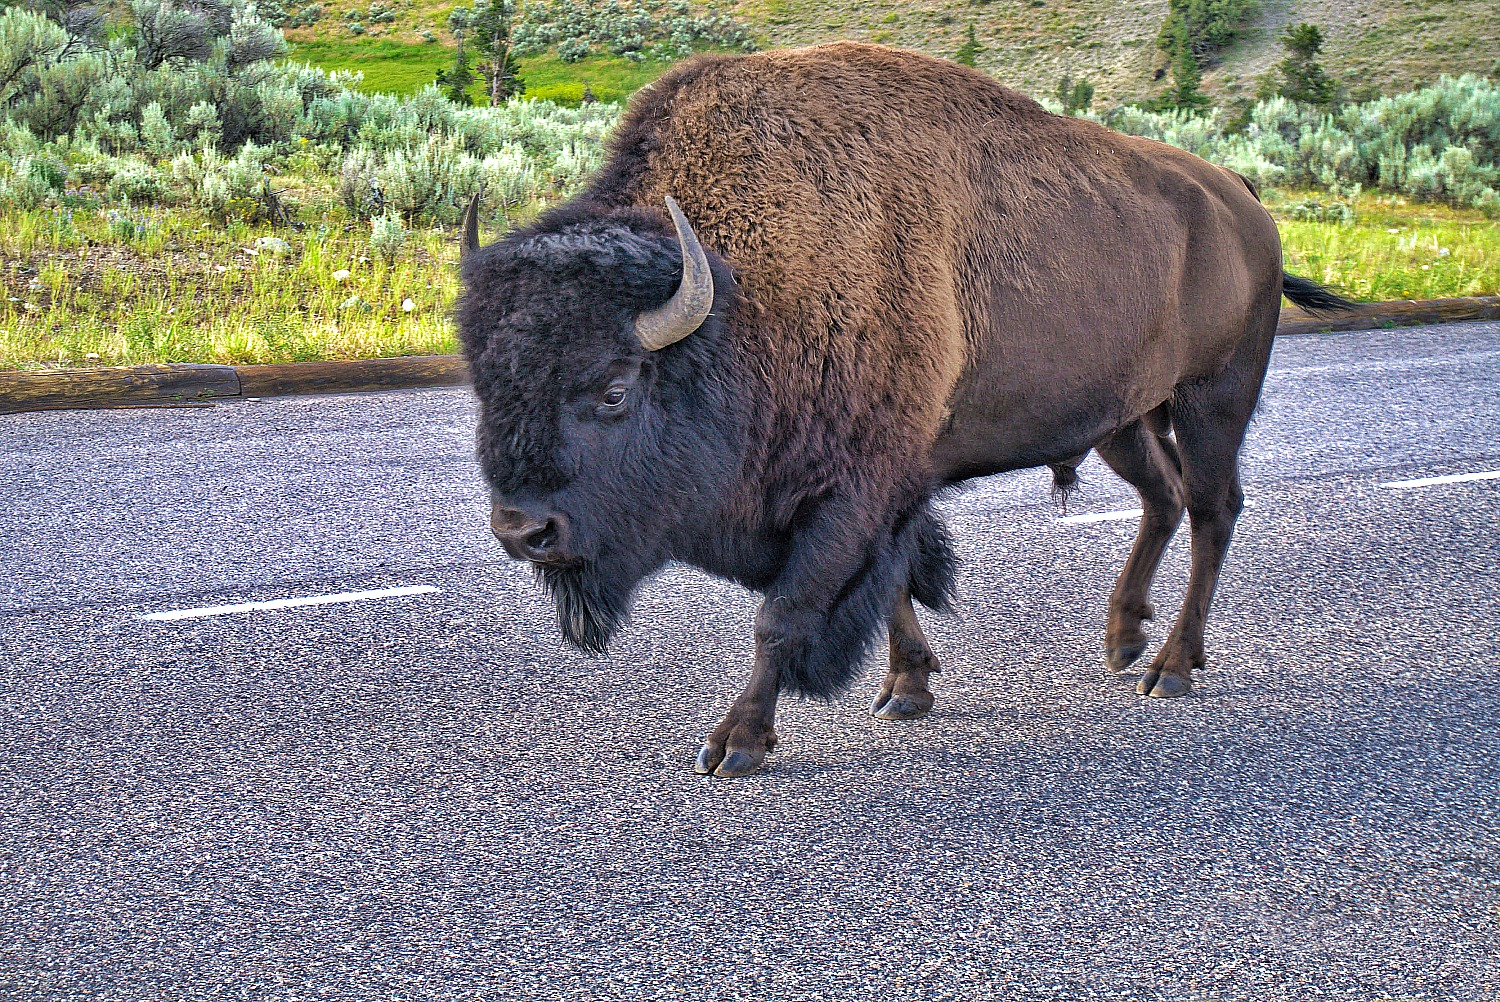 When visiting Yellowstone, remember, bison are mostly active at dusk